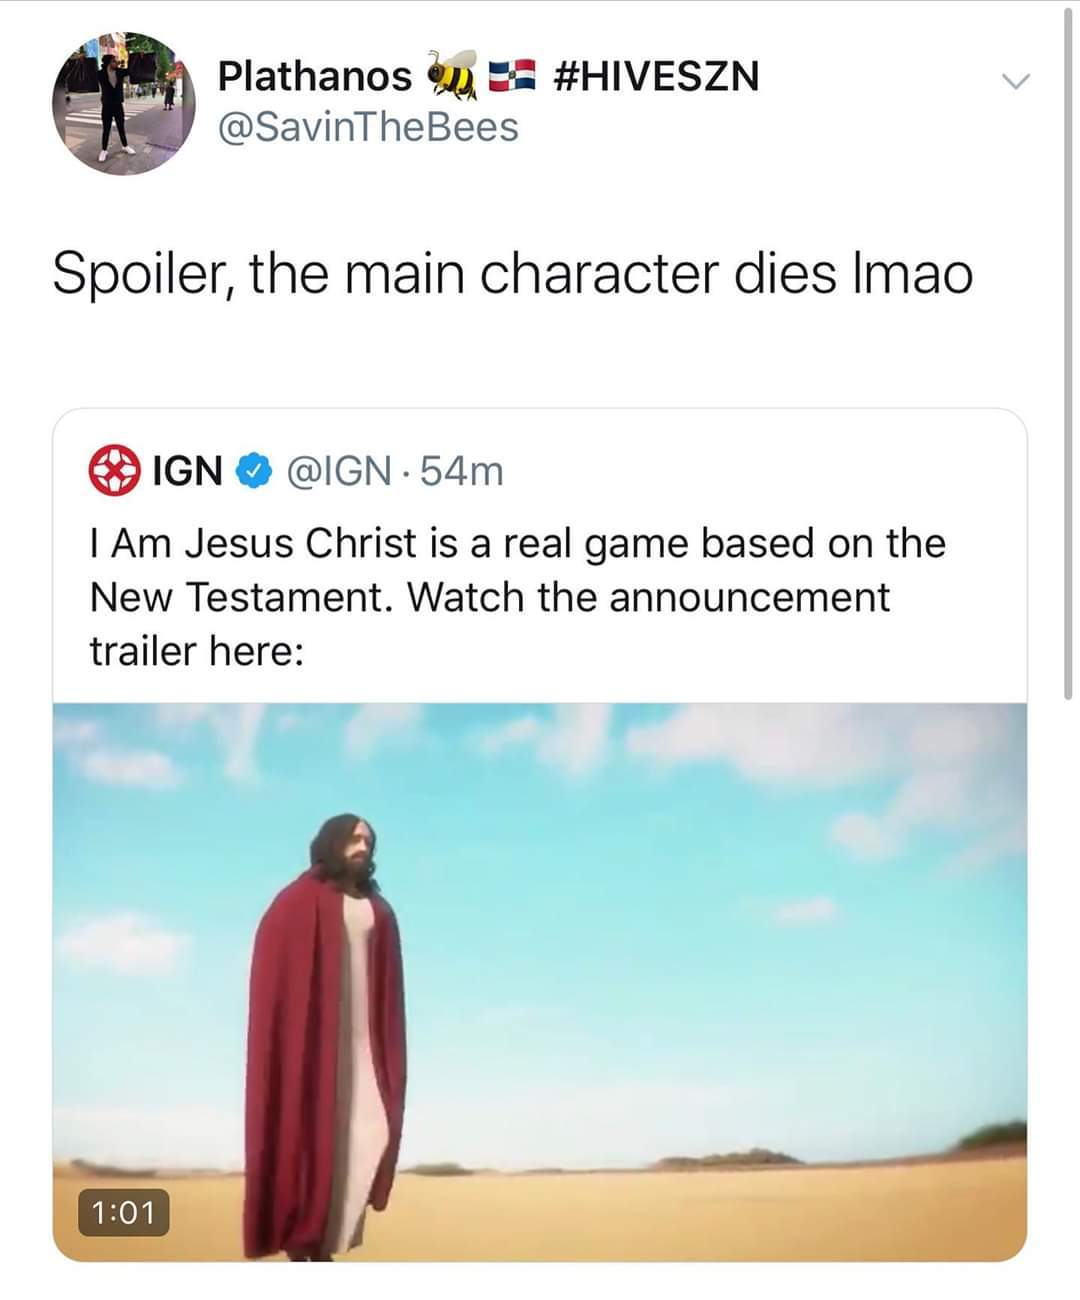 Wonder what kind of gameplay will it be - meme